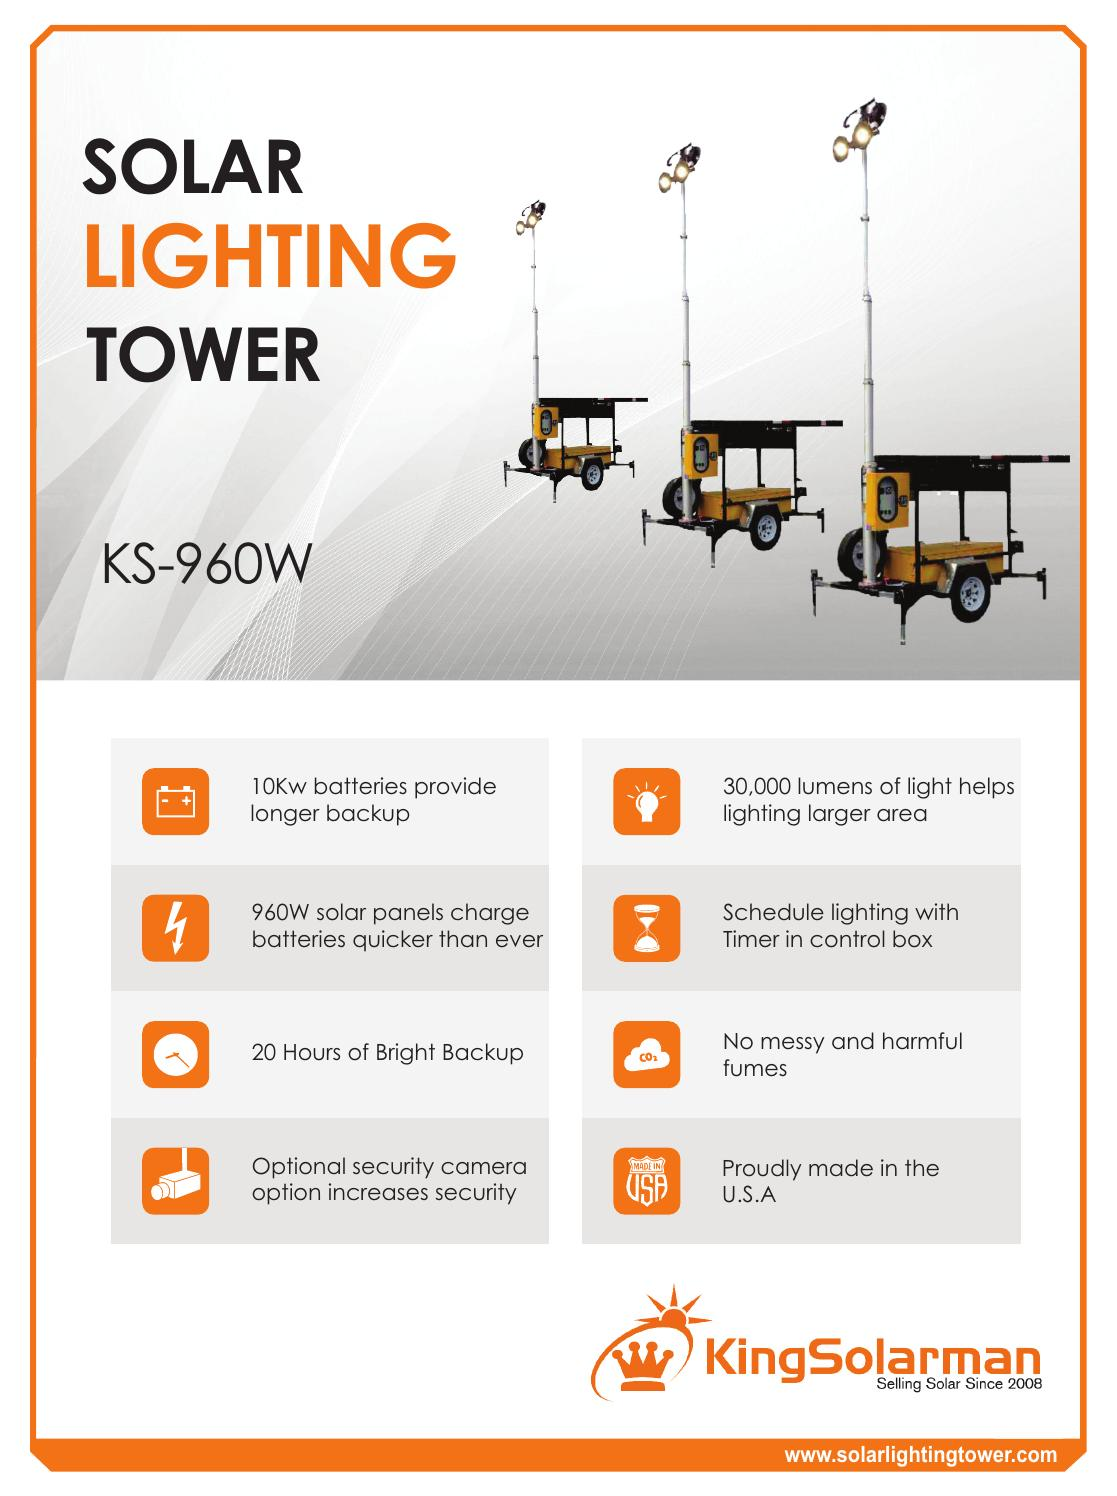 Solar Light Tower Ks 960w By King Solarman Inc Issuu